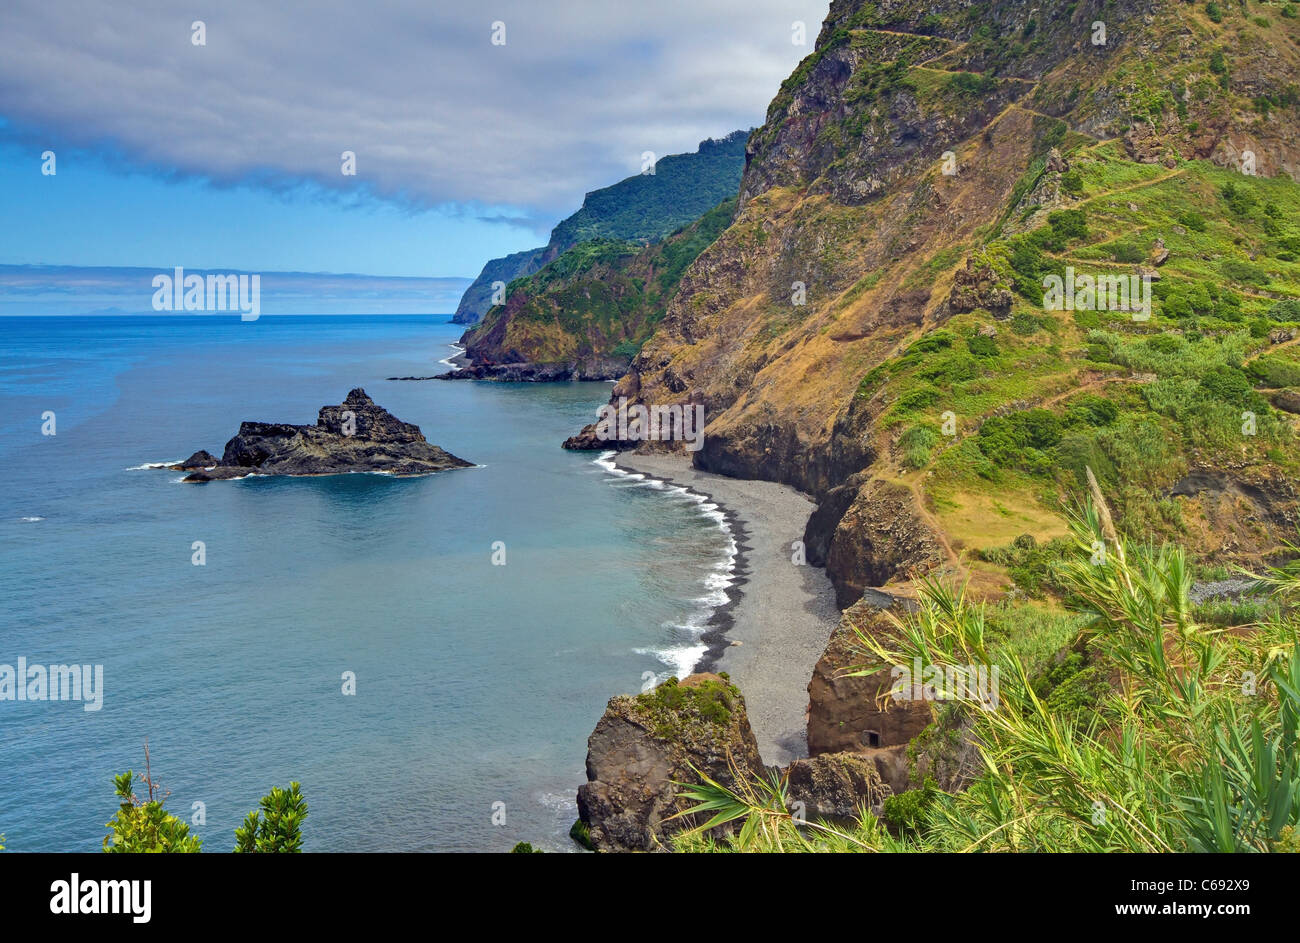 The North Coast of Madeira - Stock Image